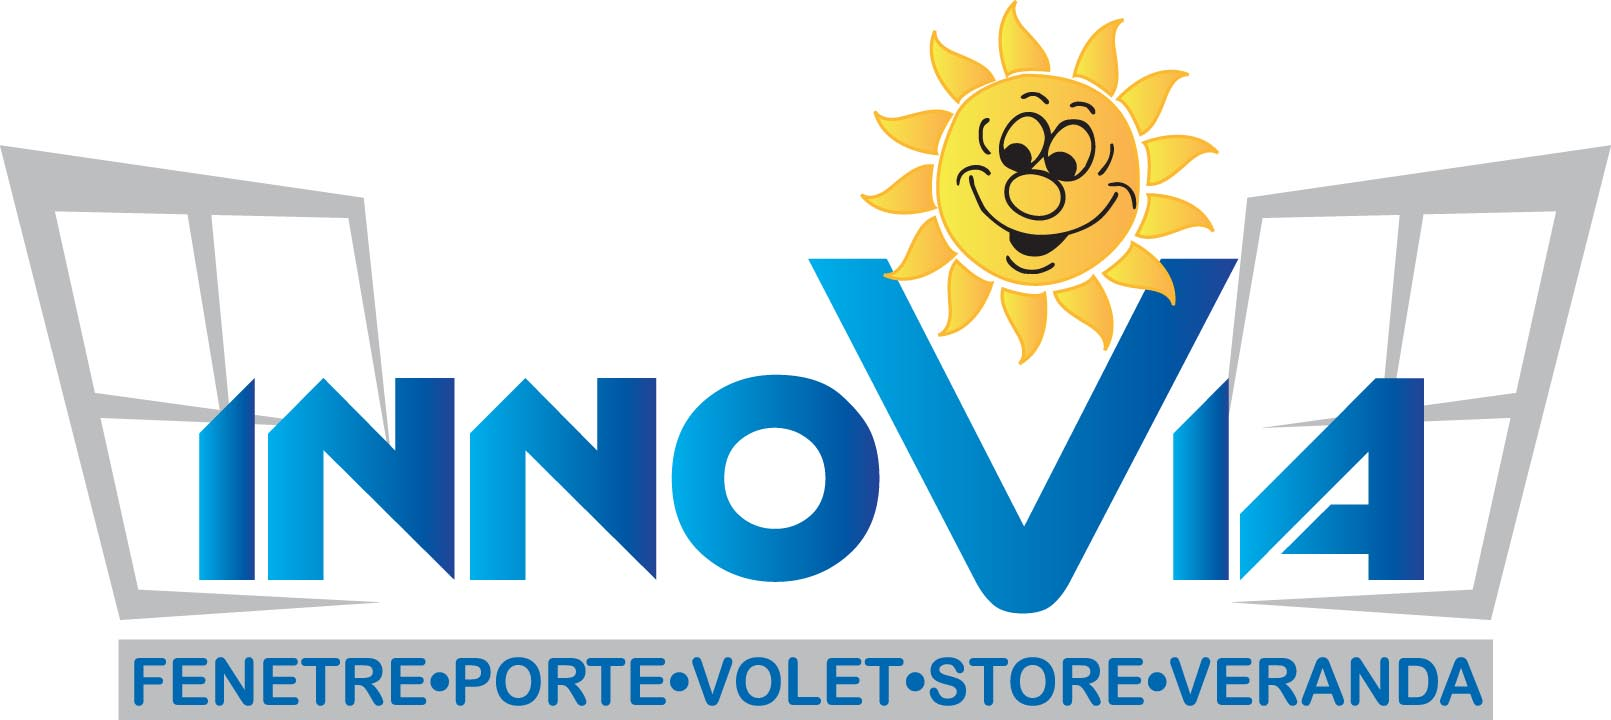 Innovia - Menuiseries, fenêtres, volets roulants